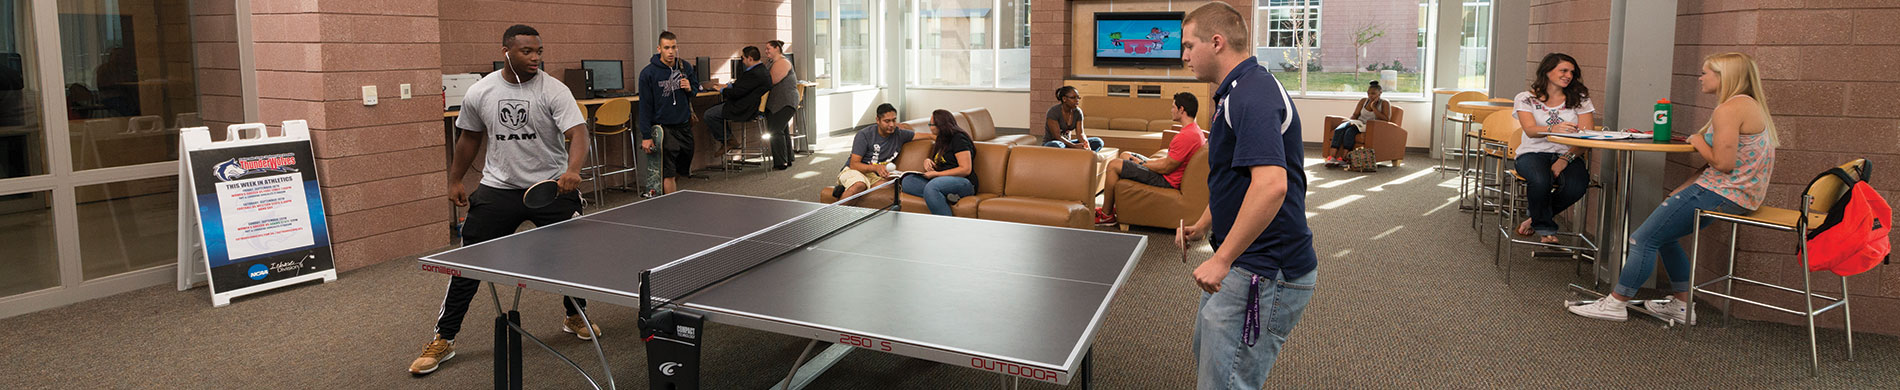 Students playing ping pong in the Culebra Lobby